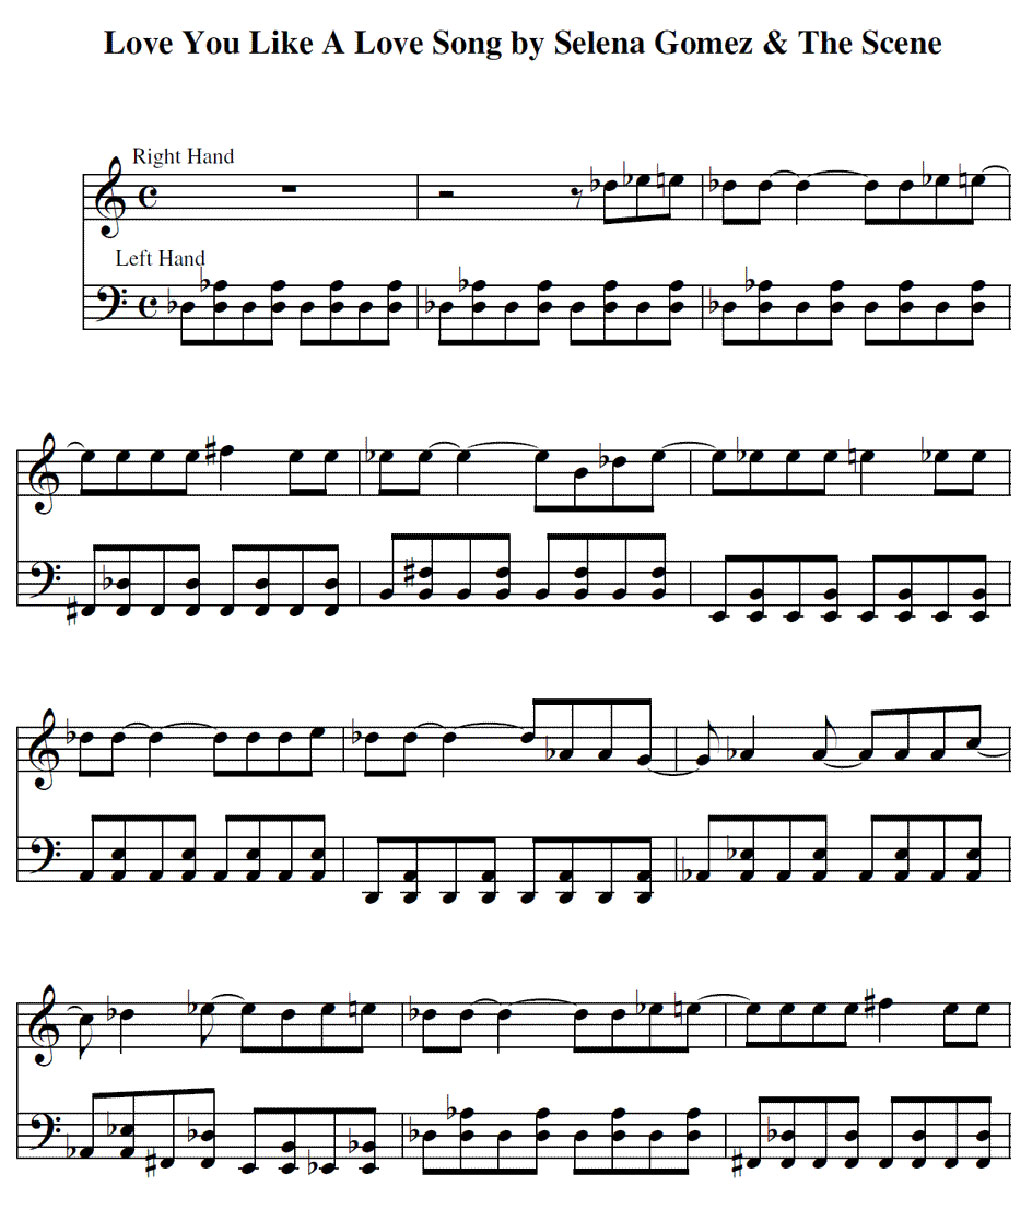 love you like love a song sheet music notes